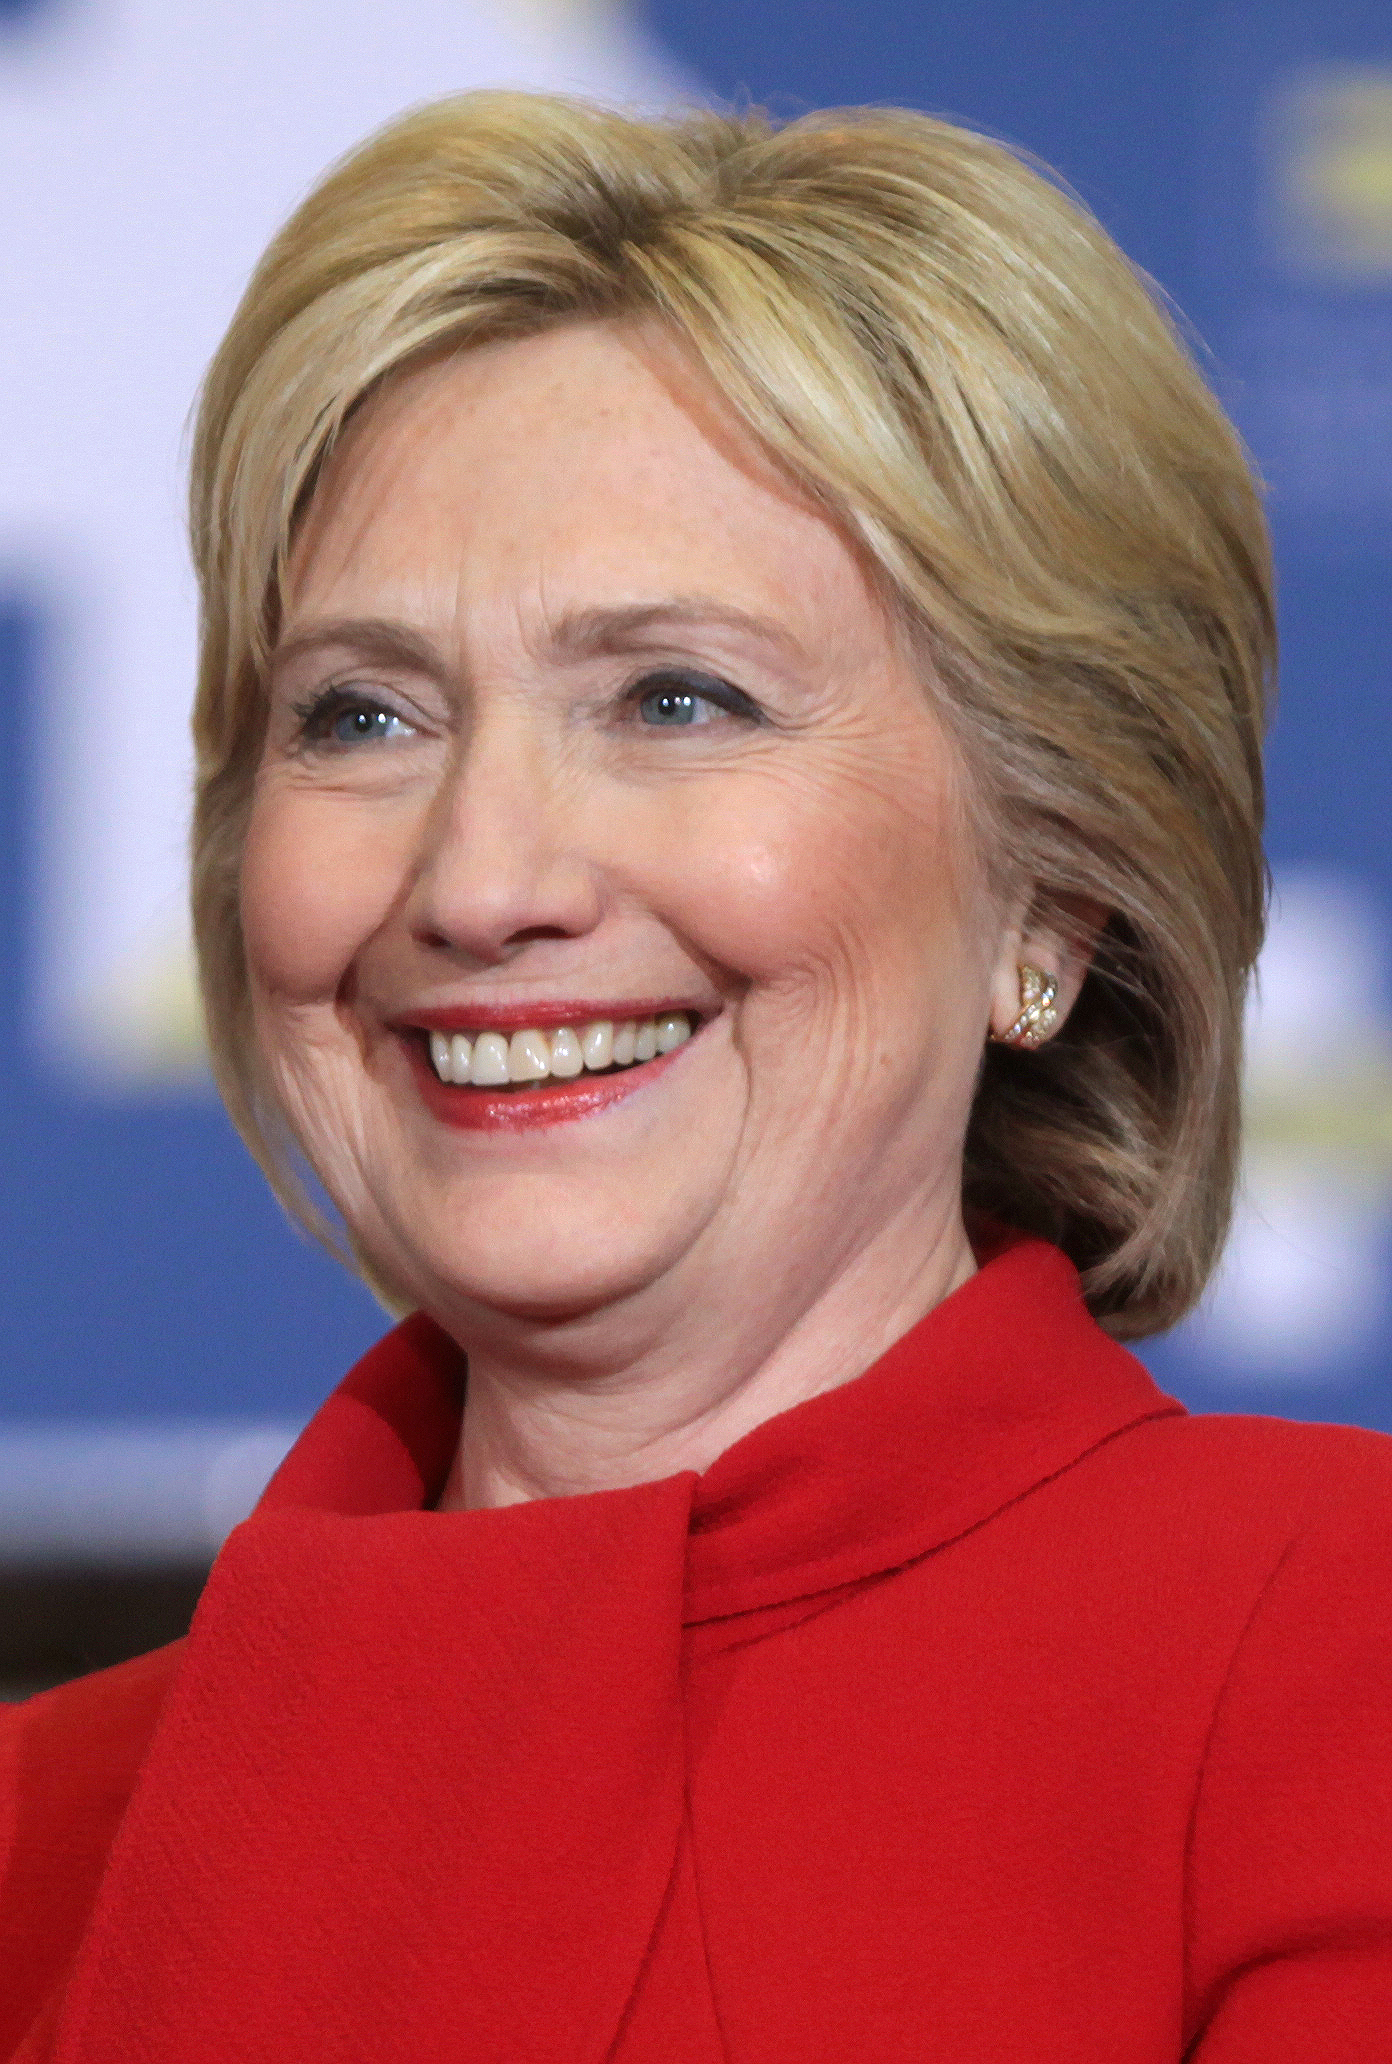 The 72-year old daughter of father (?) and mother(?) Hillary Clinton in 2020 photo. Hillary Clinton earned a 0.19 million dollar salary - leaving the net worth at 21.5 million in 2020